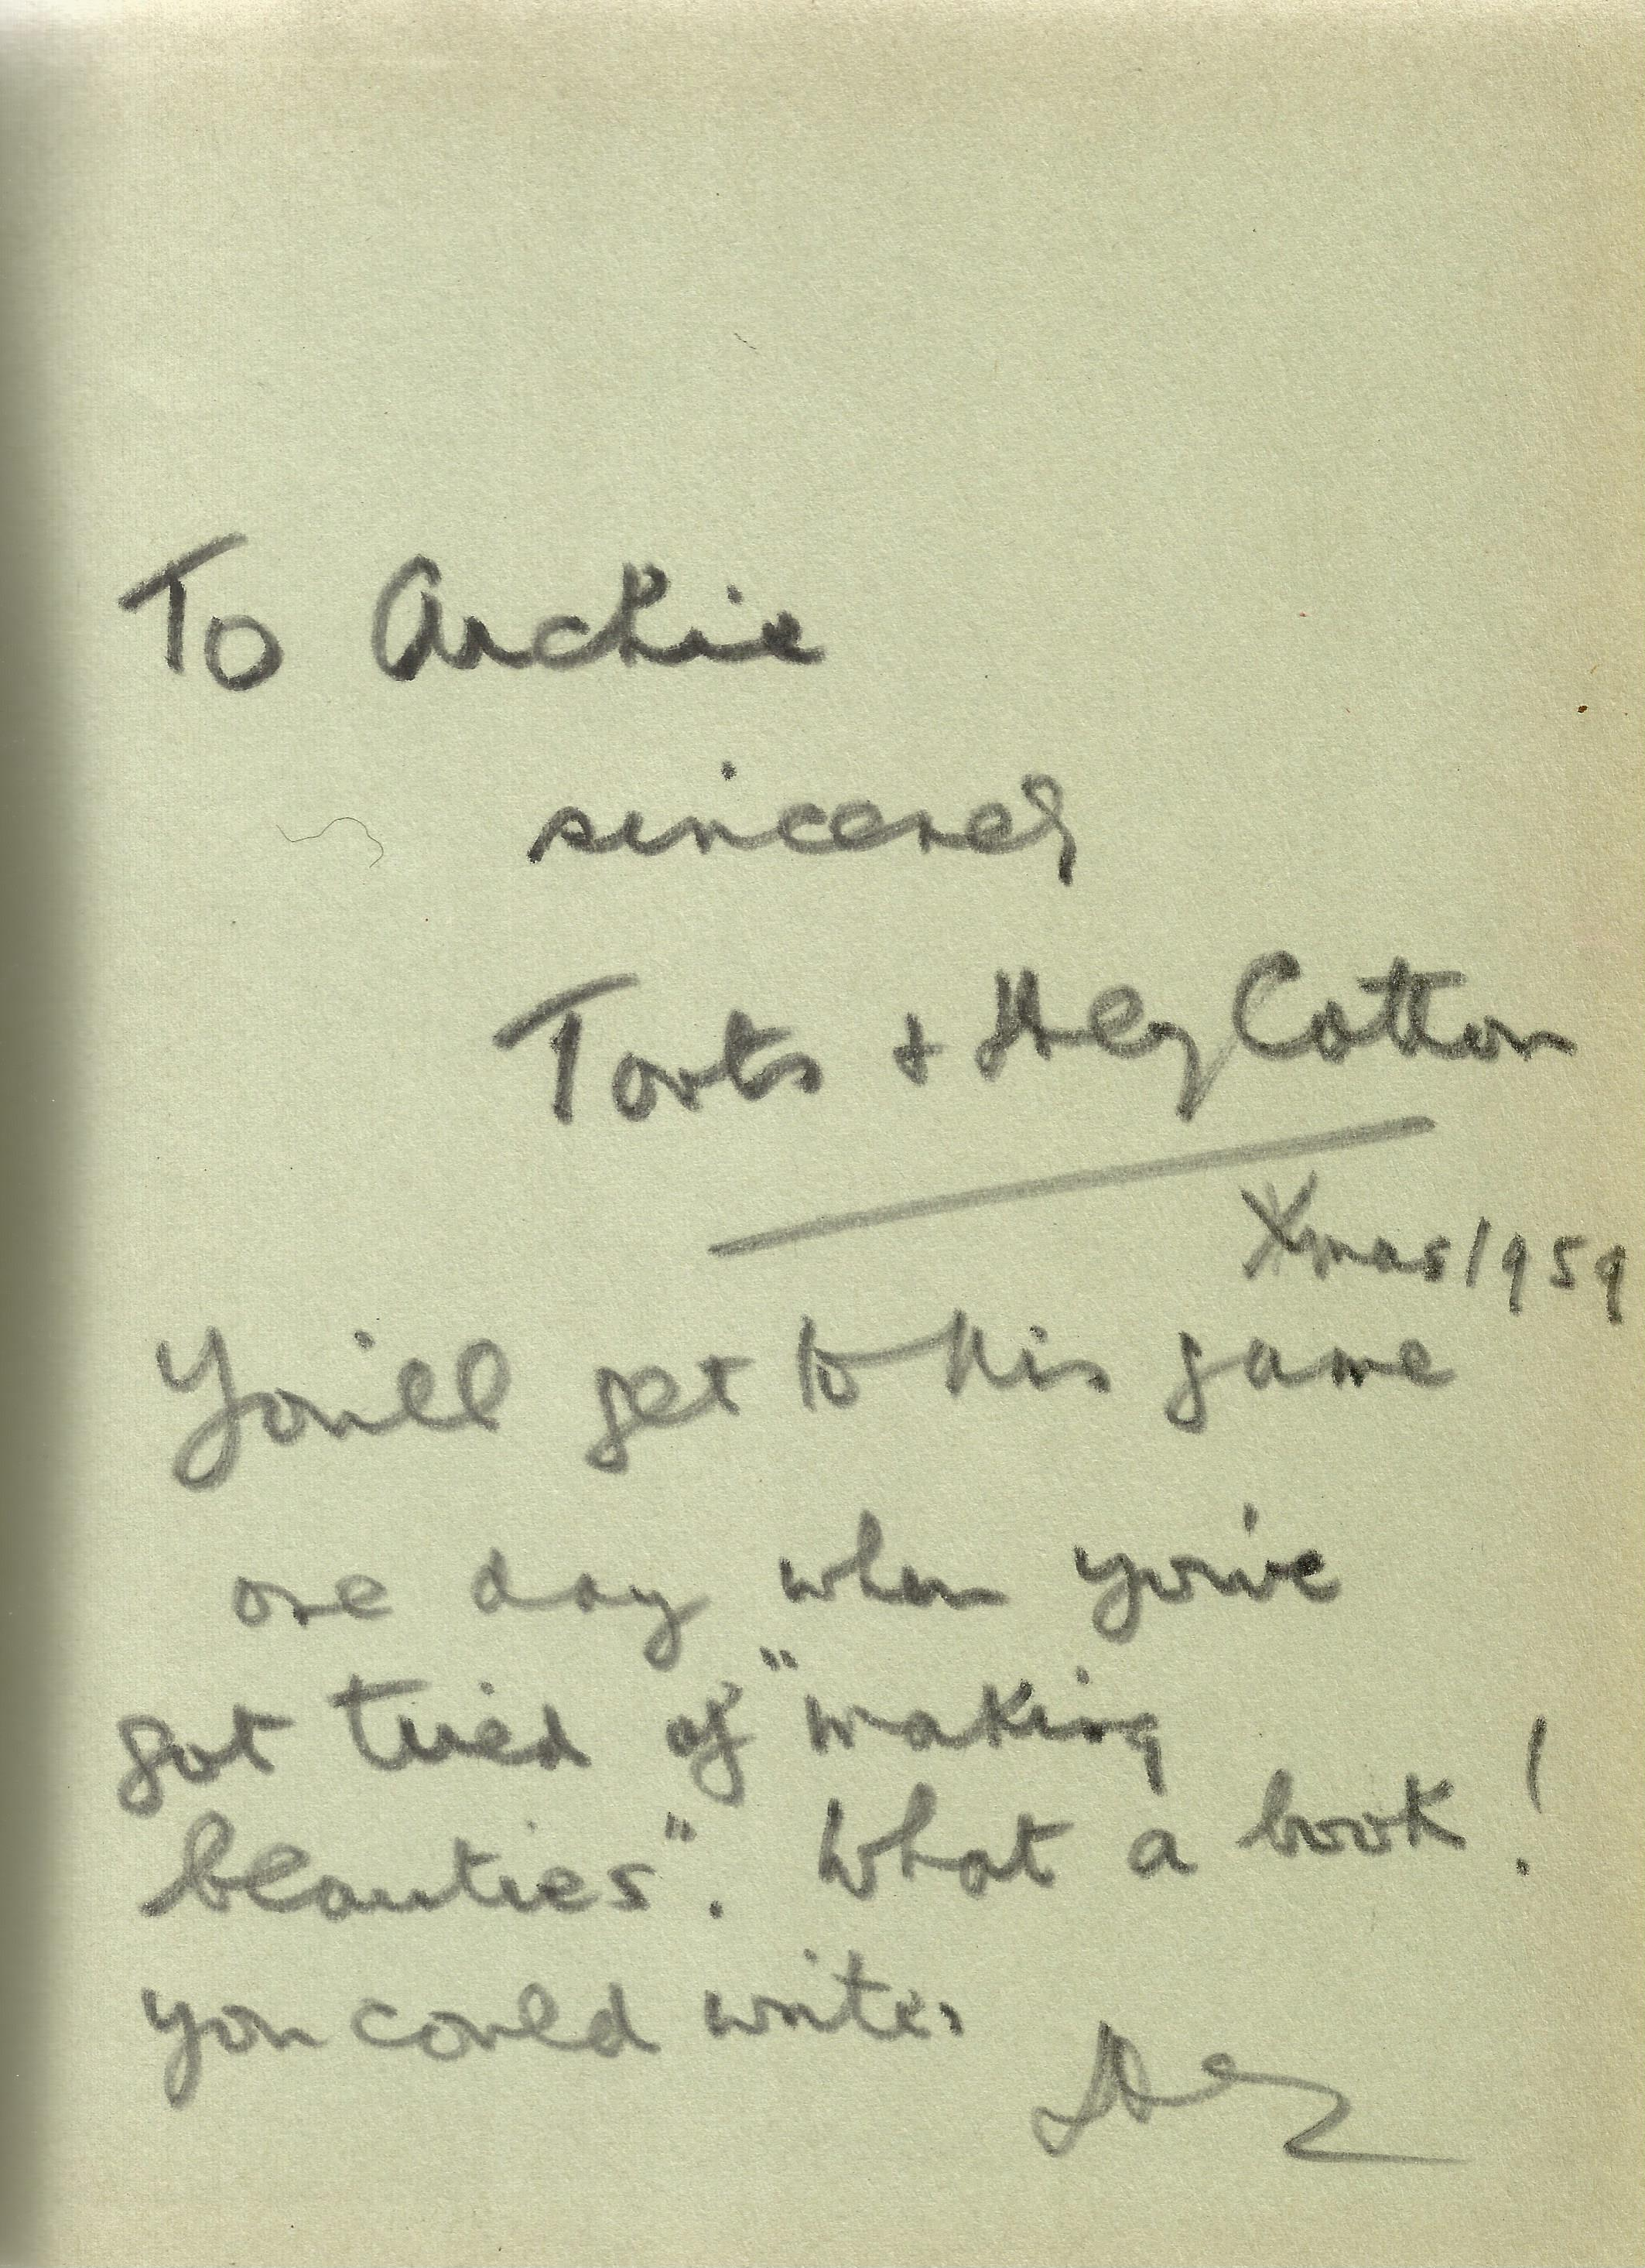 Sir Archibald McIndoe Family Photo Album plus 5 Hardback Books from His personal collection - Image 8 of 23